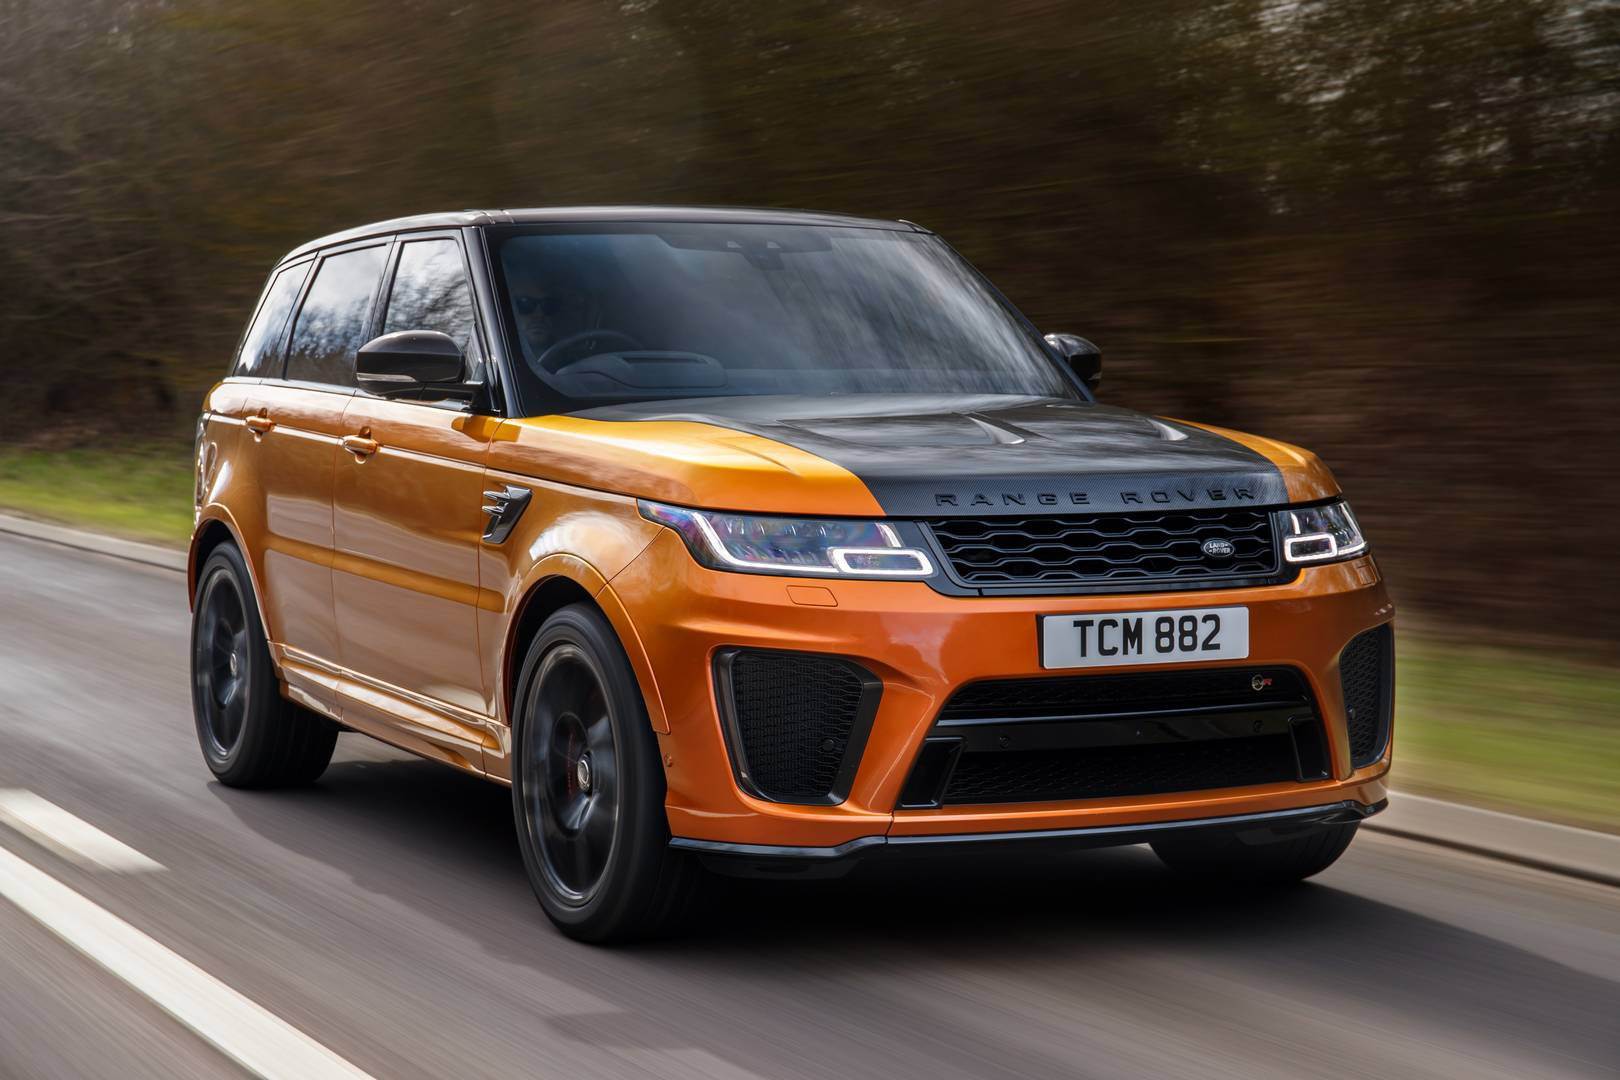 Best Range Rover Range Rover Svr Range Rover Sport Svr With Range Rover